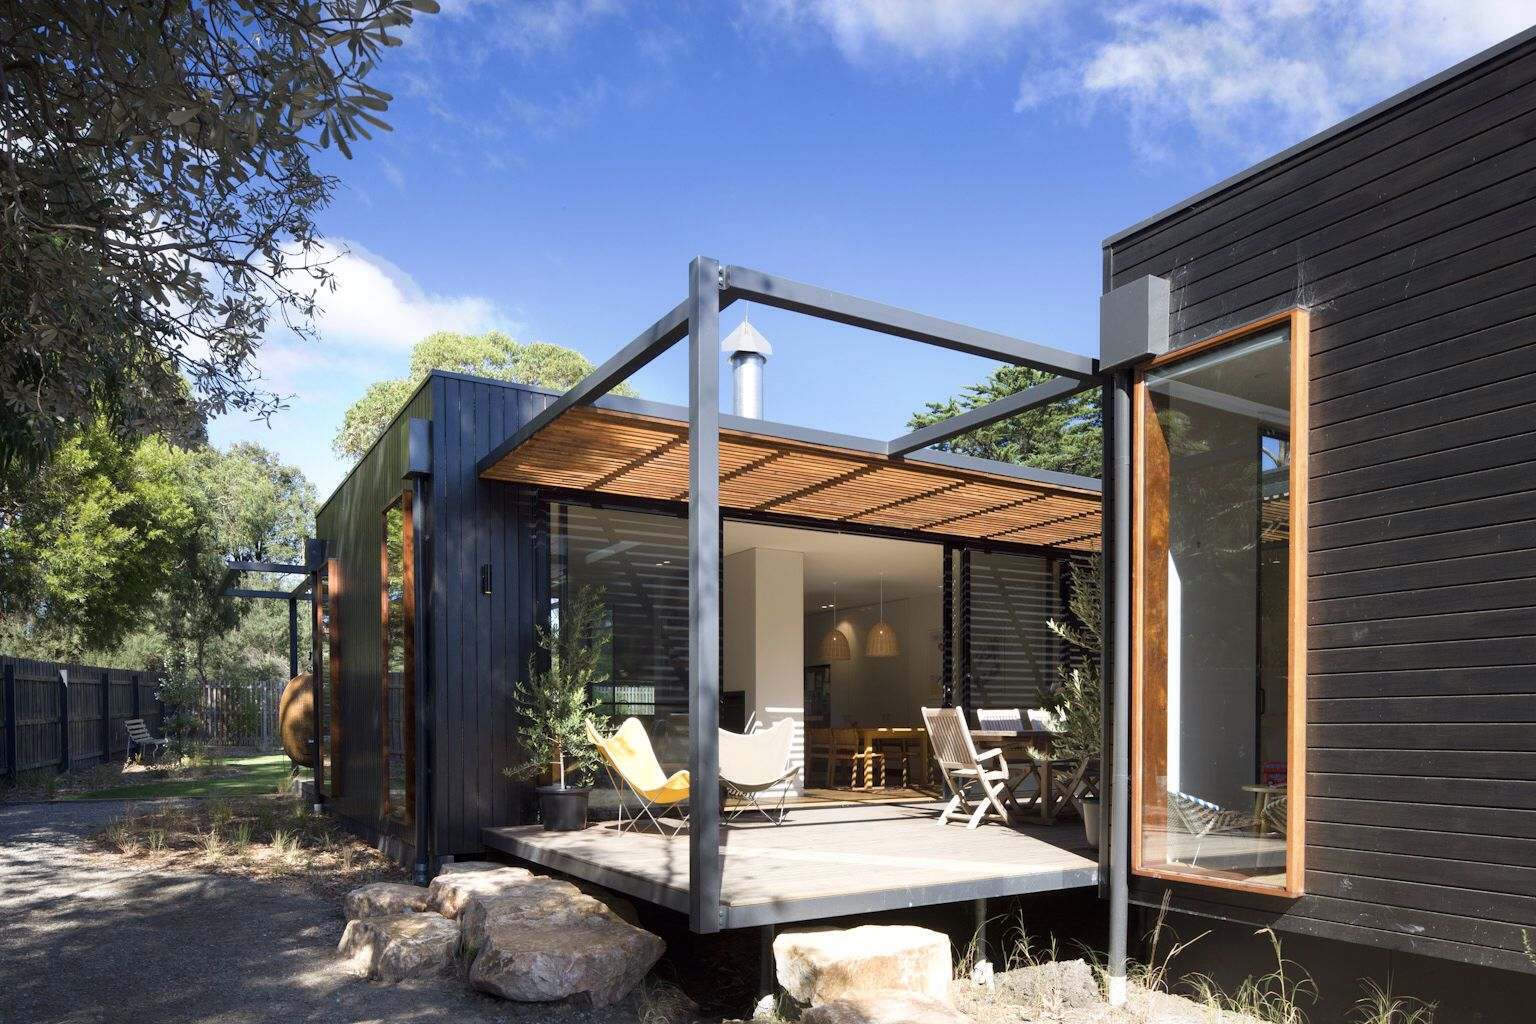 Prefabricated In 10 12 Weeks And Installed Onsite In One